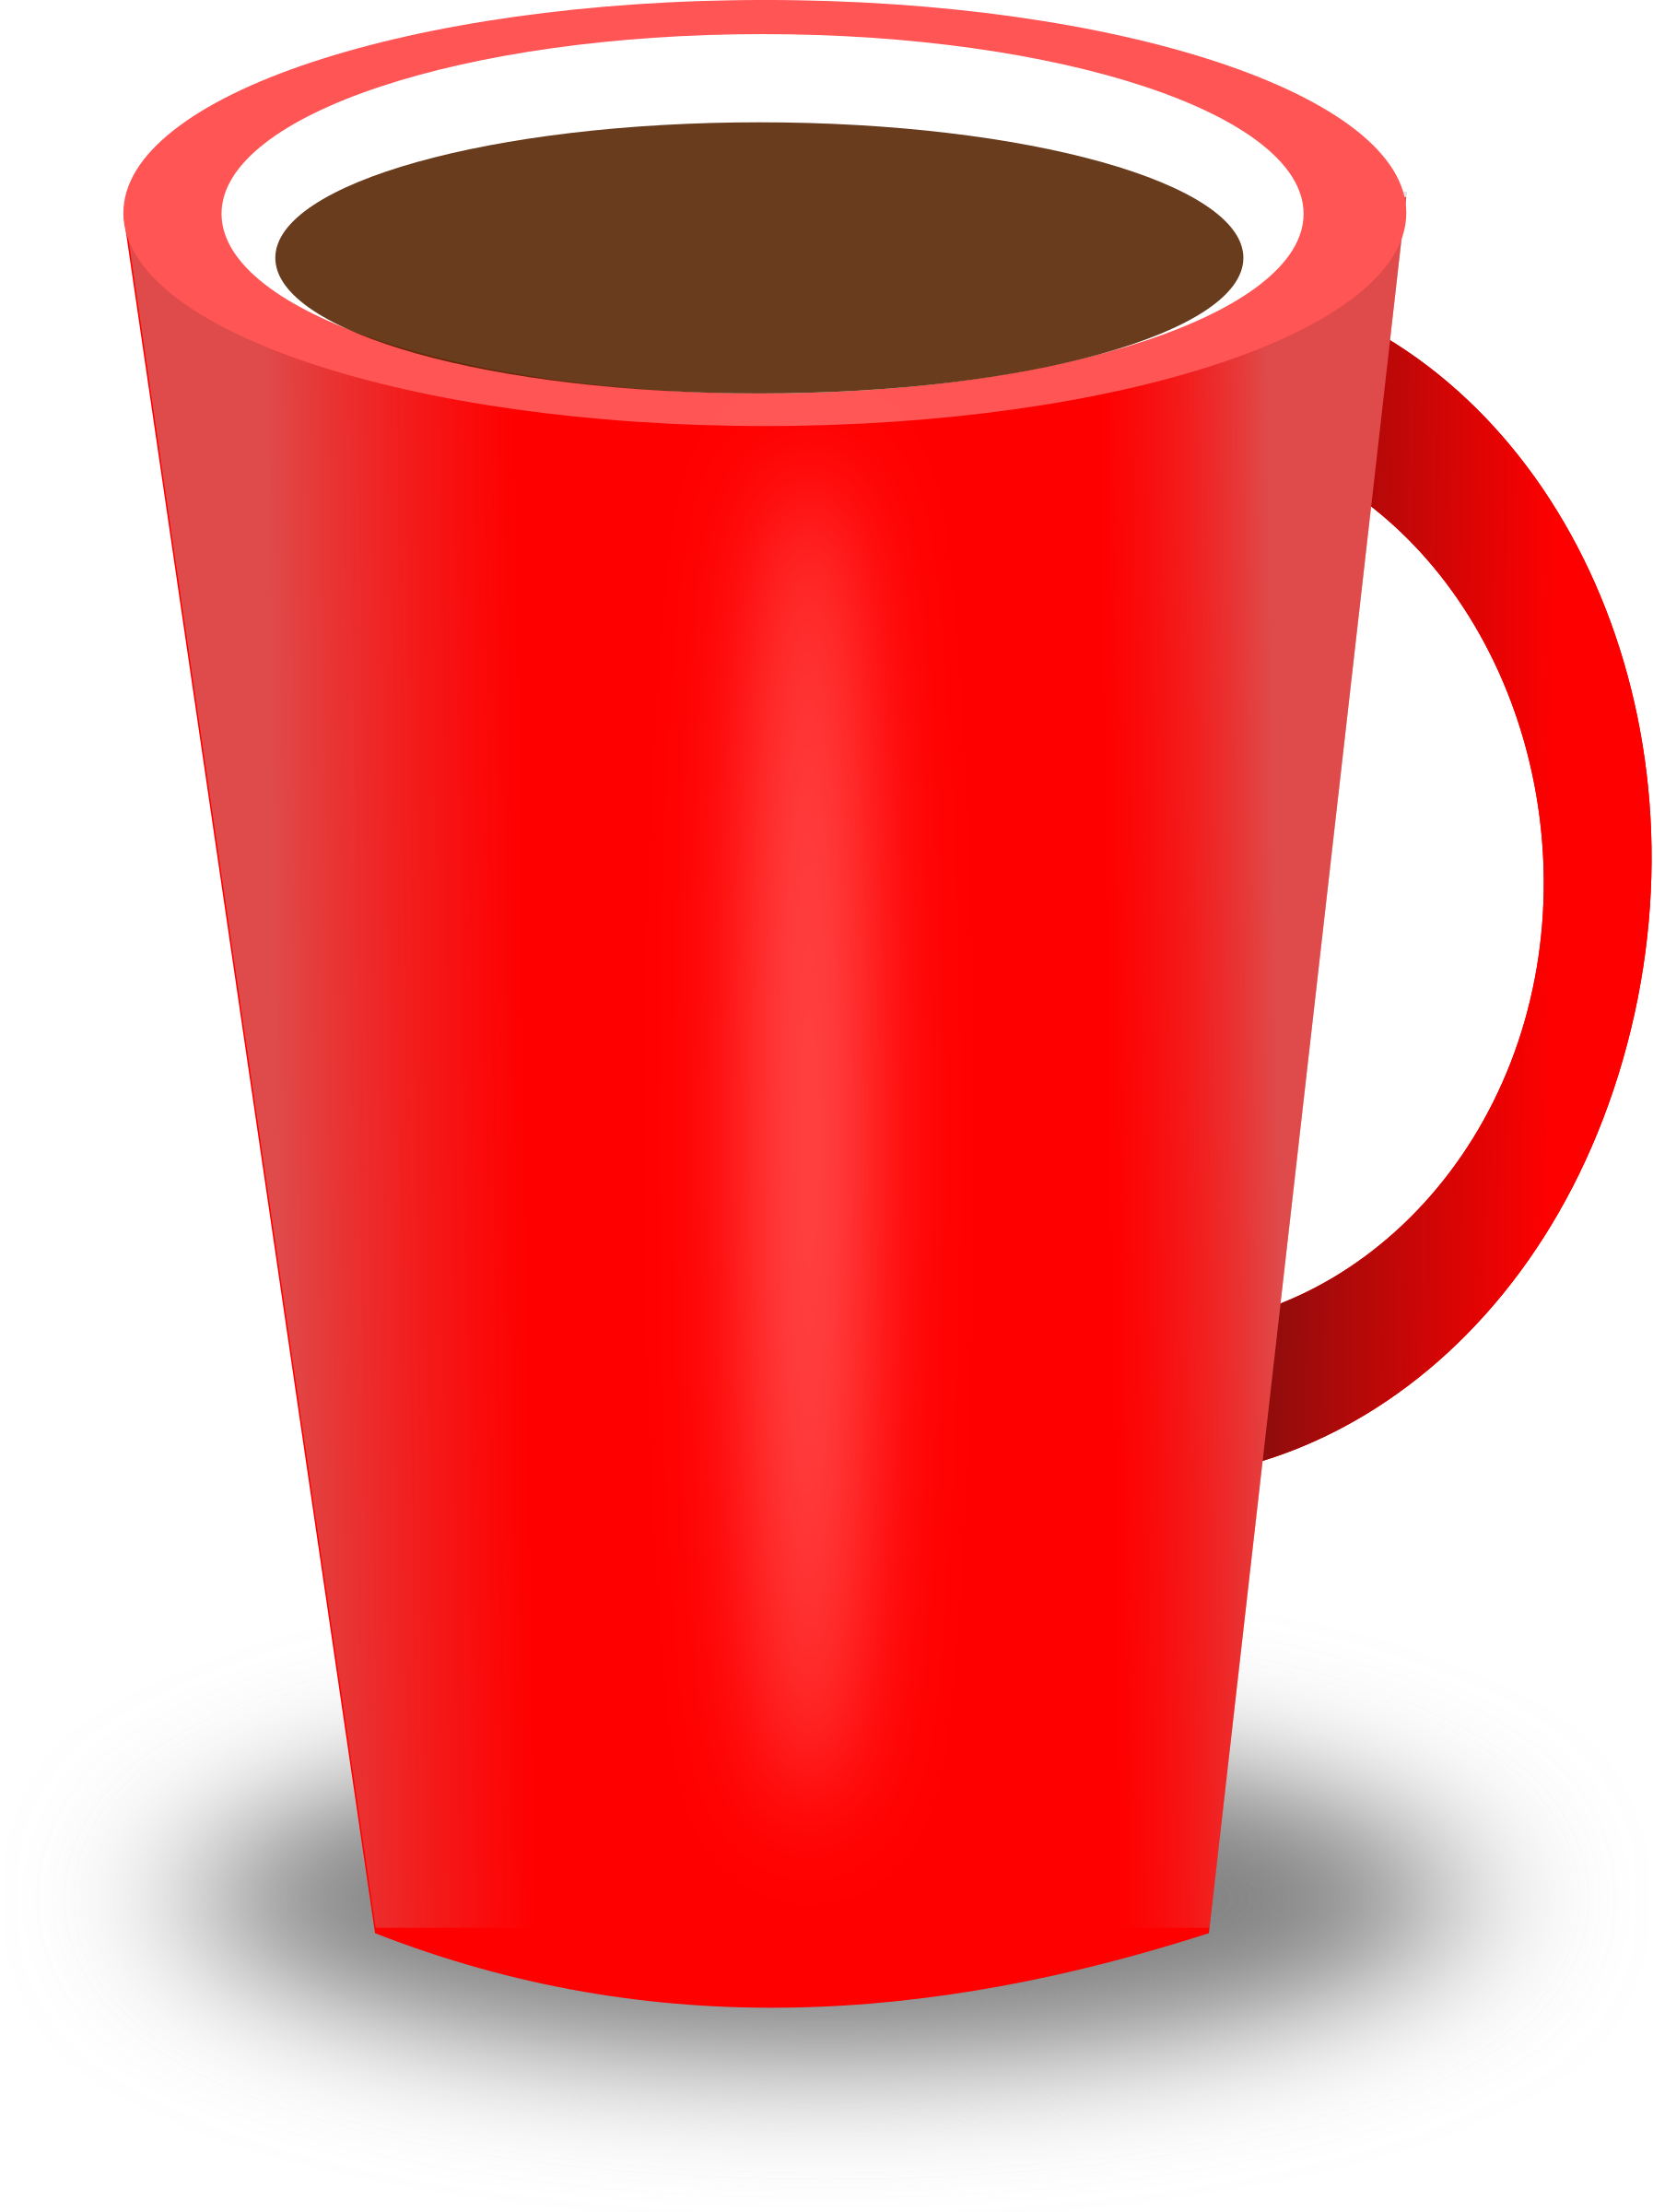 Clipart red coffee cup - ClipartBarn picture royalty free download